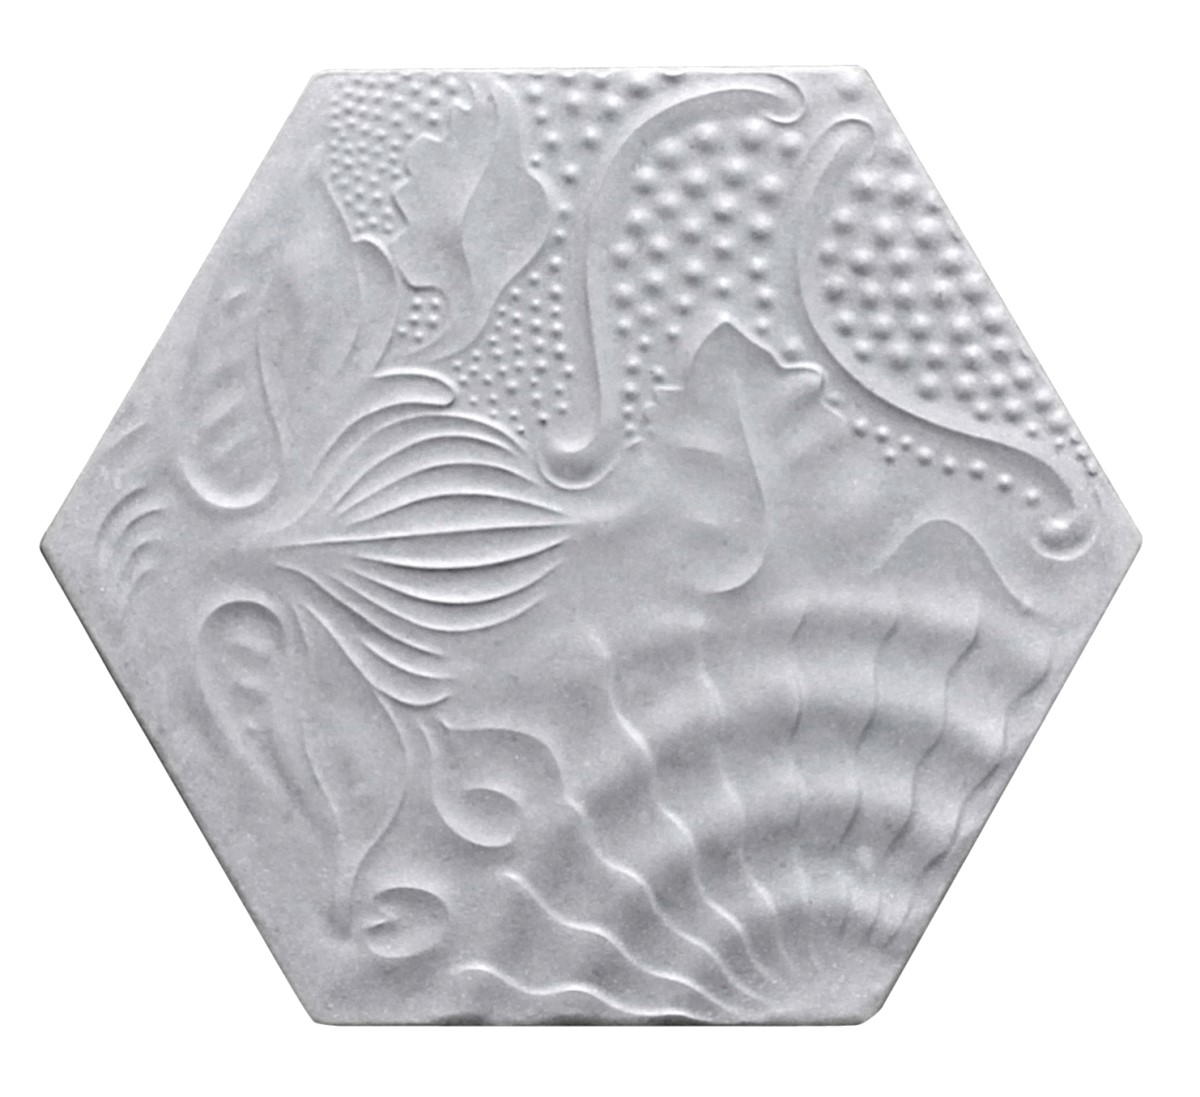 Fliesen Relief Cement Relief Tile Gaudi Von Replicata Grey Replikate